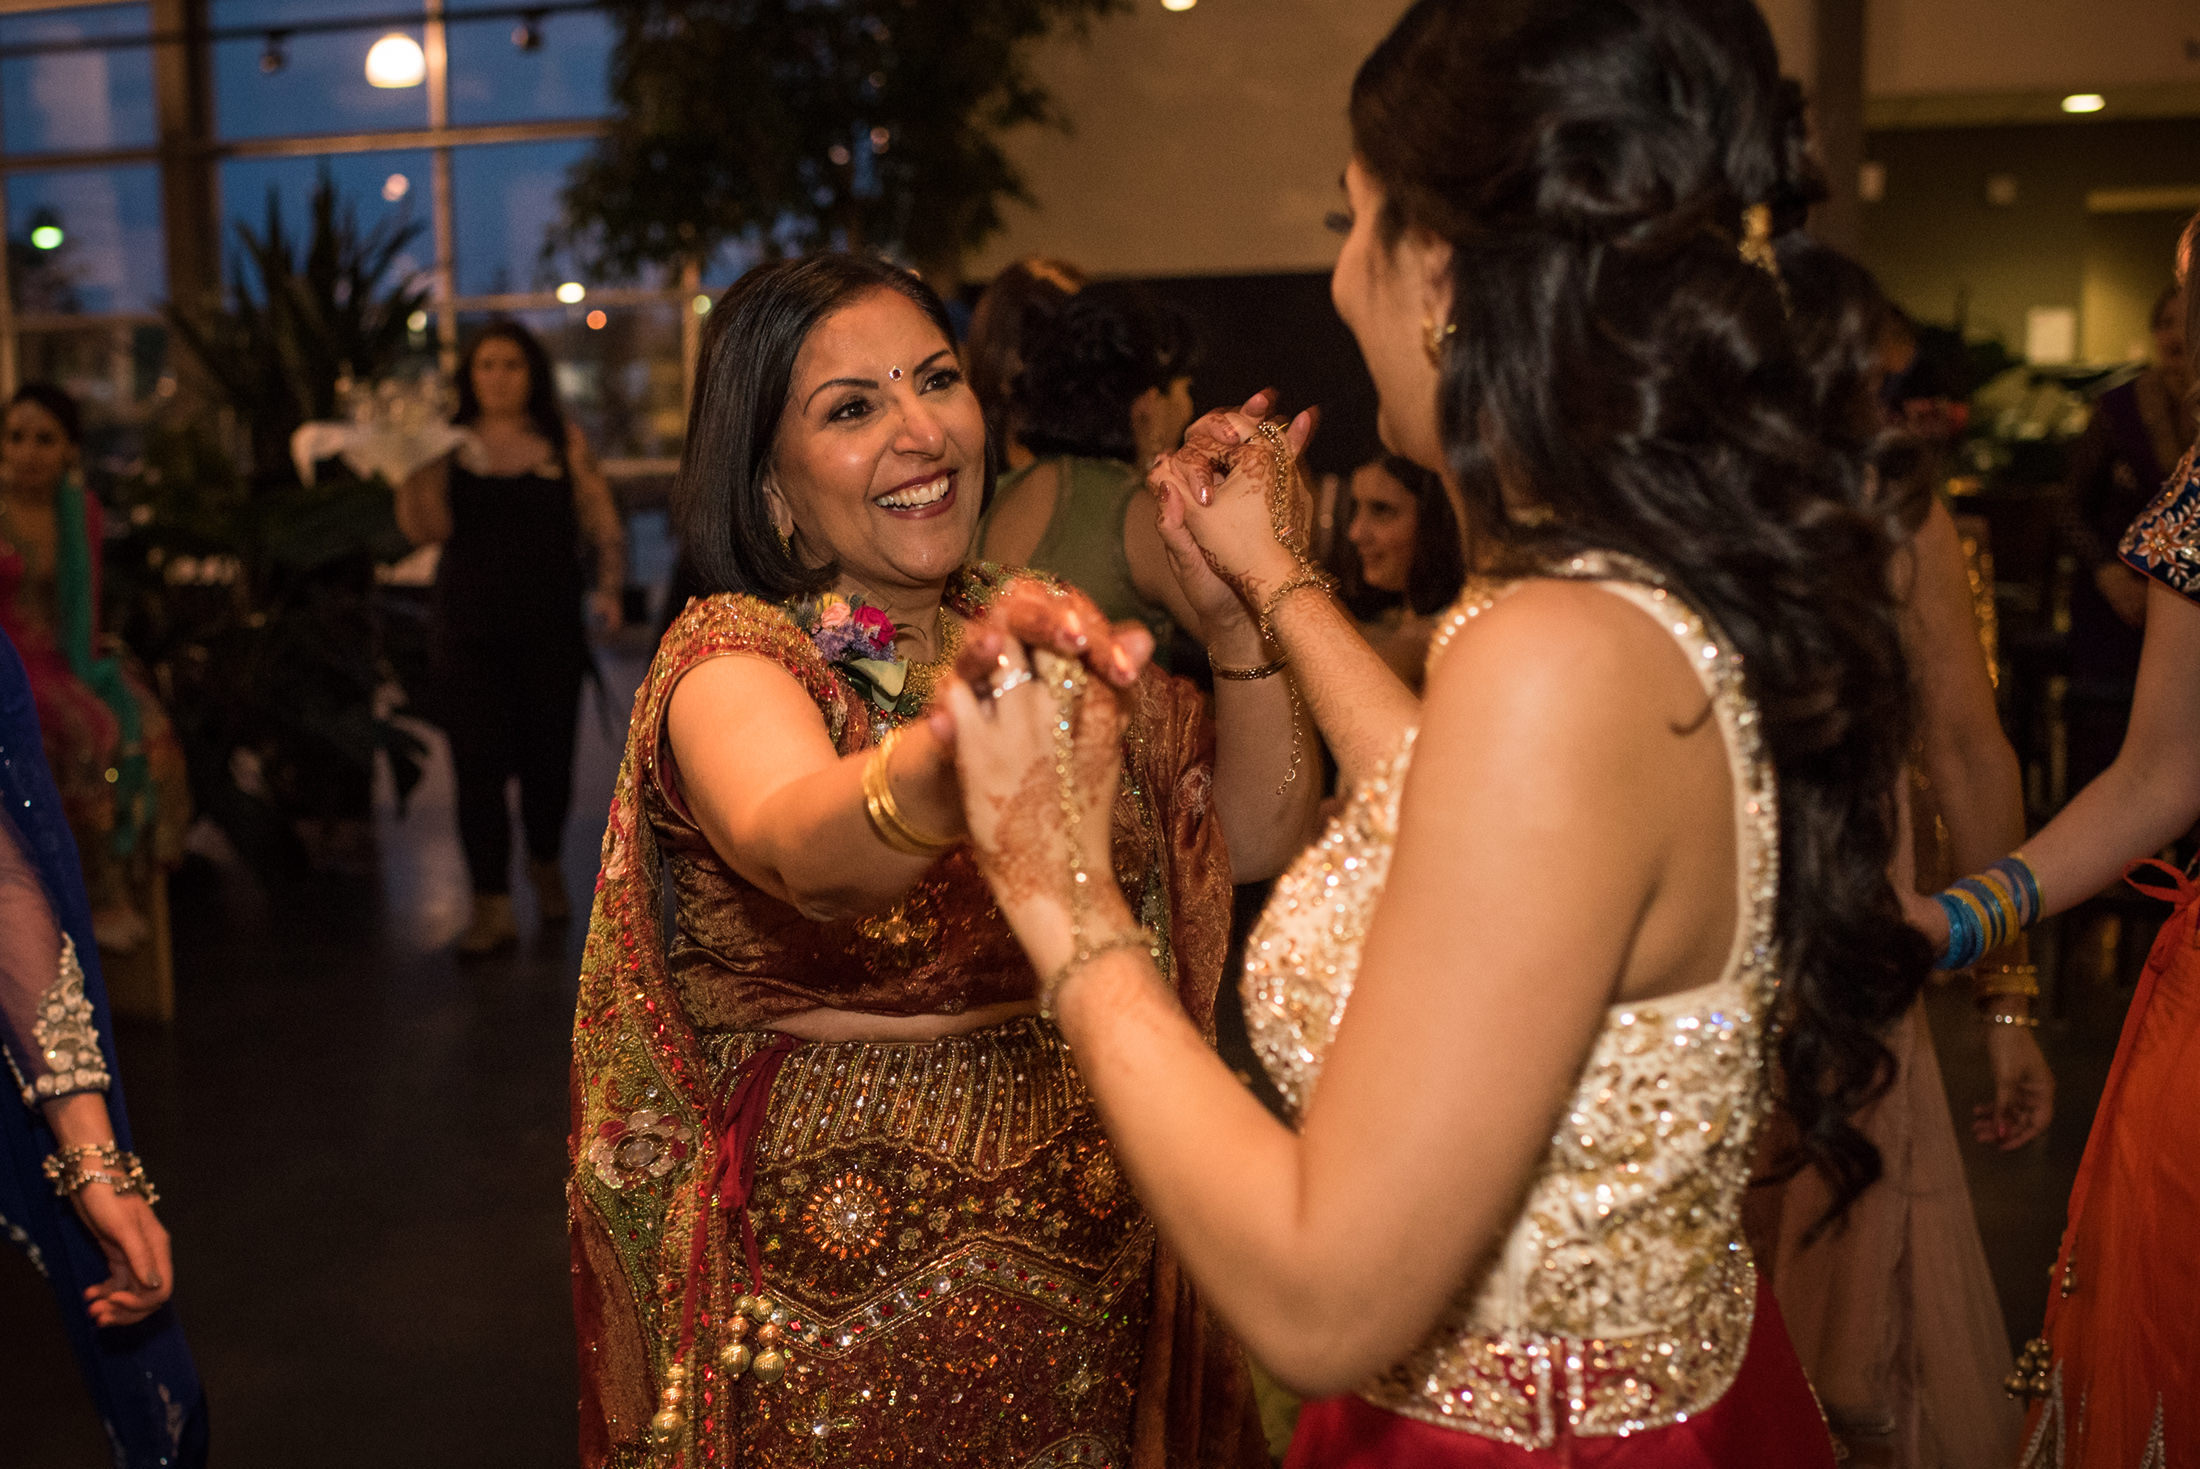 Edmonton_wedding_photographers_enjoy_center_wedding_Kiran_faisal_41.jpg